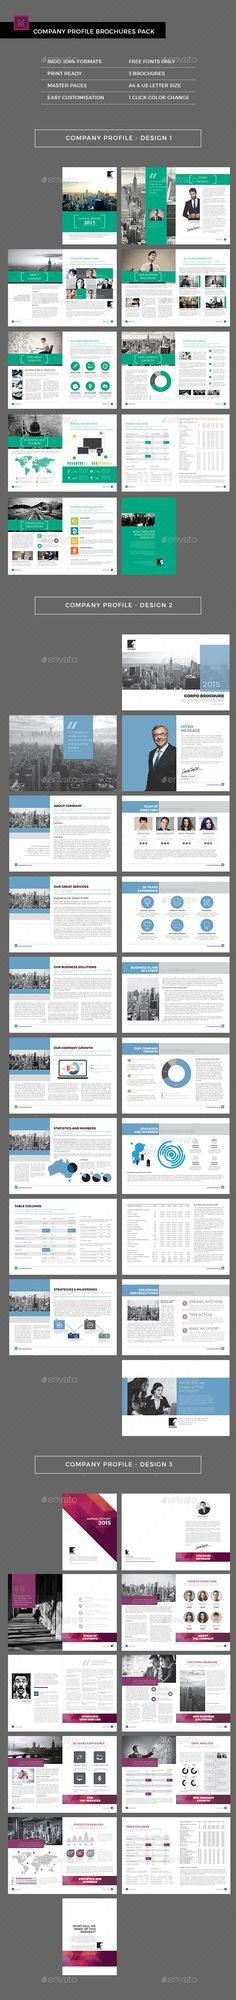 "Company Profile Brochures Pack (3-in-1) Template InDesign INDD. Download here: <a href=""http://graphicriver.net/item/company-profile-brochures-pack-3in1/16034601?ref=ksioks"" rel=""nofollow"" target=""_blank"">graphicriver.net/...</a>"